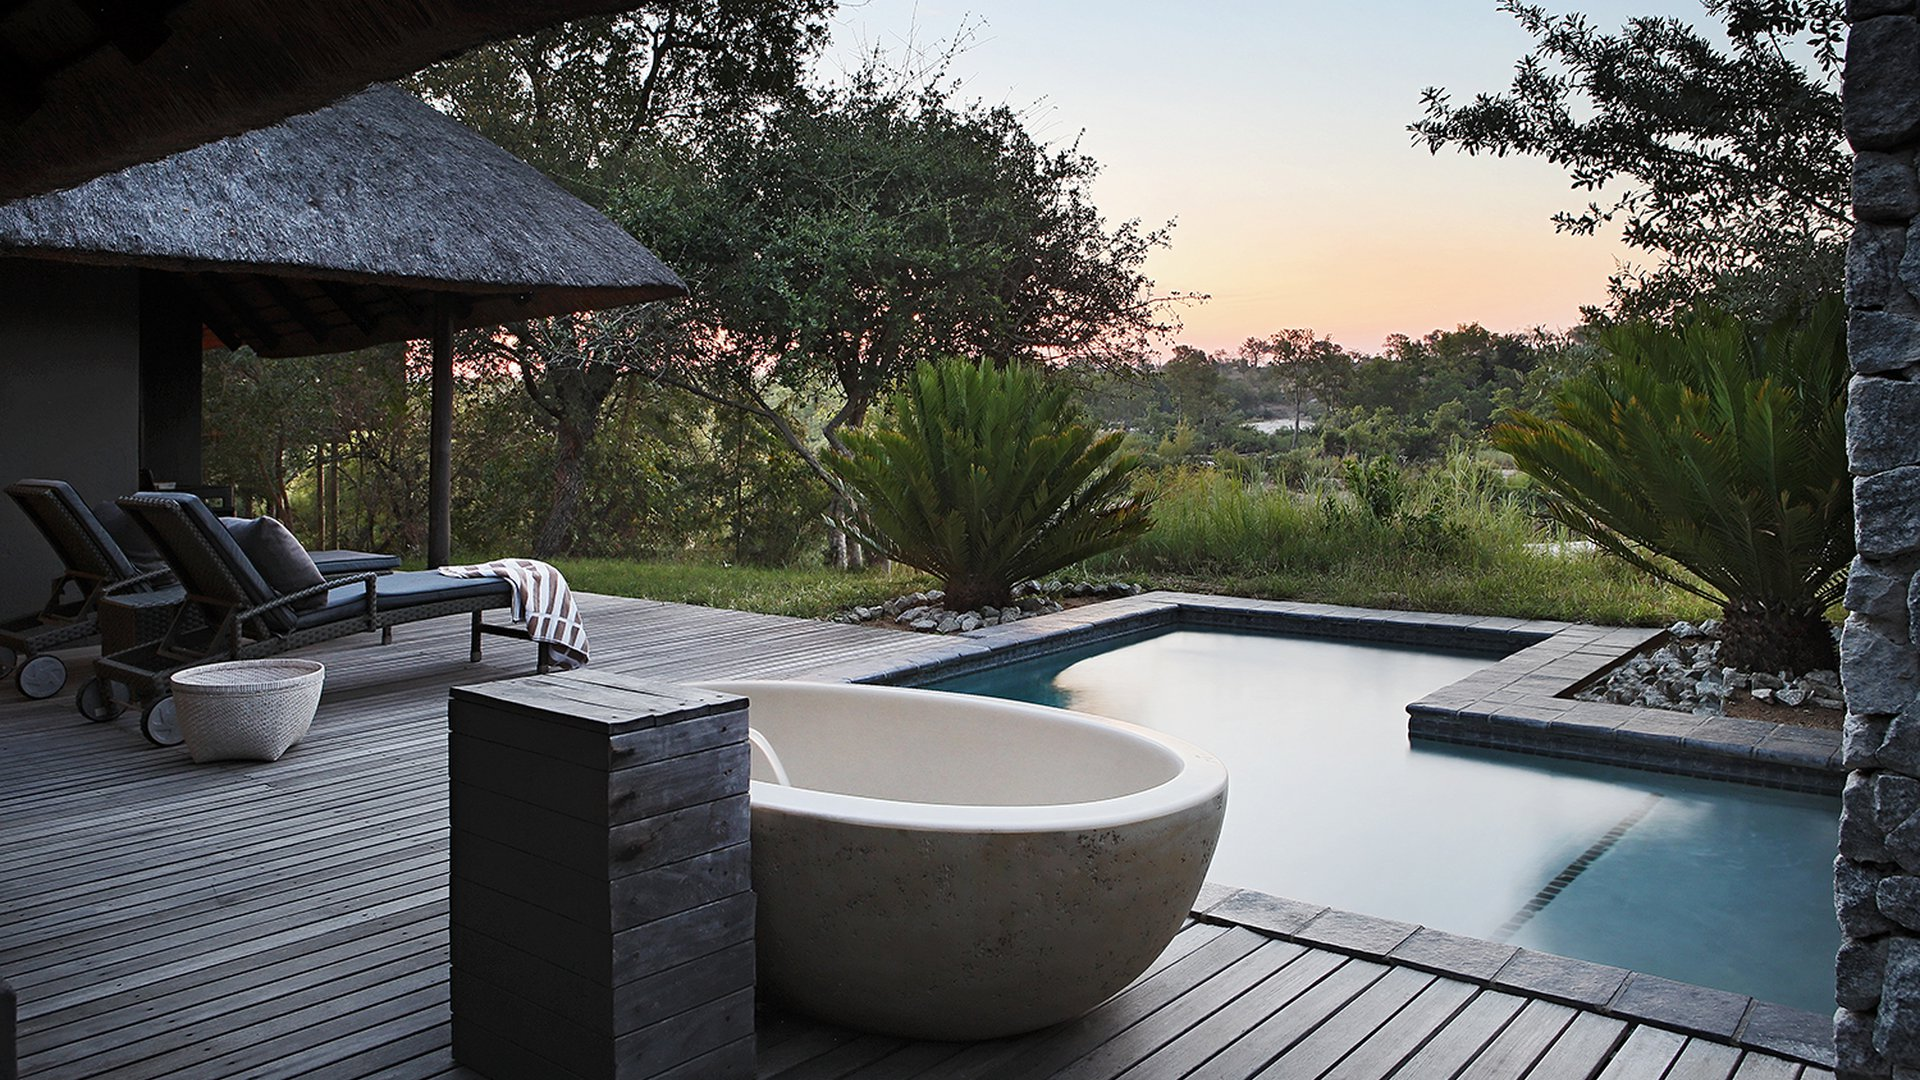 luxury lifestyle Luxury Lifestyle:  The Most Luxurious Hotel Rooms in Africa 10 GRANITE SUITES SABI SANDS GAME RESERVE SOUTH AFRICA